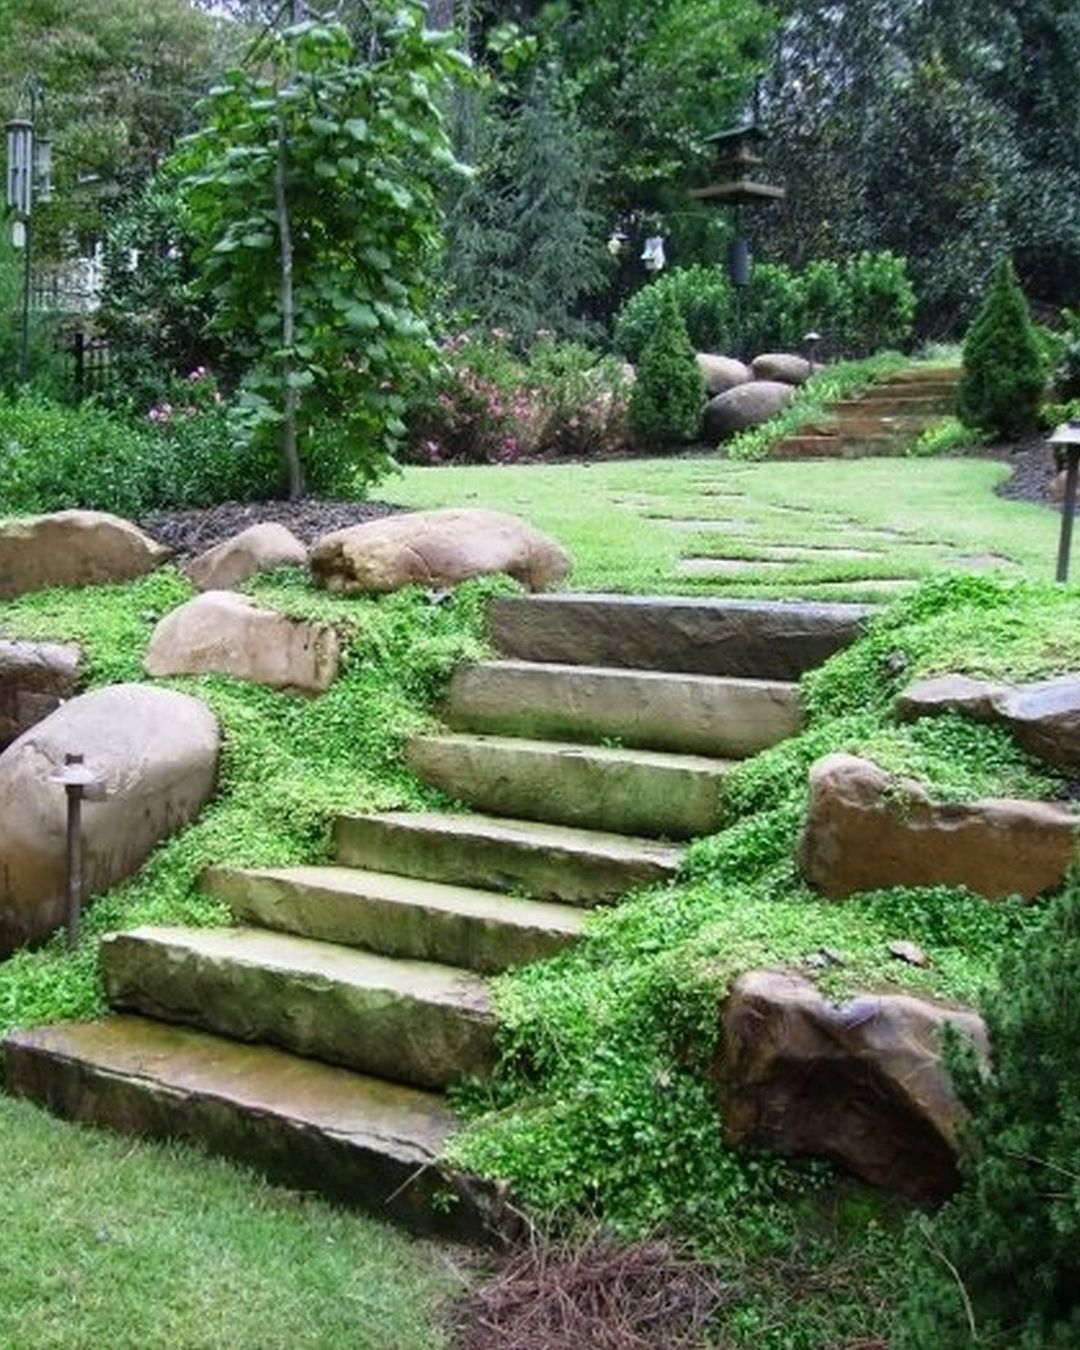 Garden Natural Impression About Large Landscaping Rocks With Laddersteps And Steeping And Big Size Stone And Look Wet Decoracao Jardim Jardim Jardins De Casas